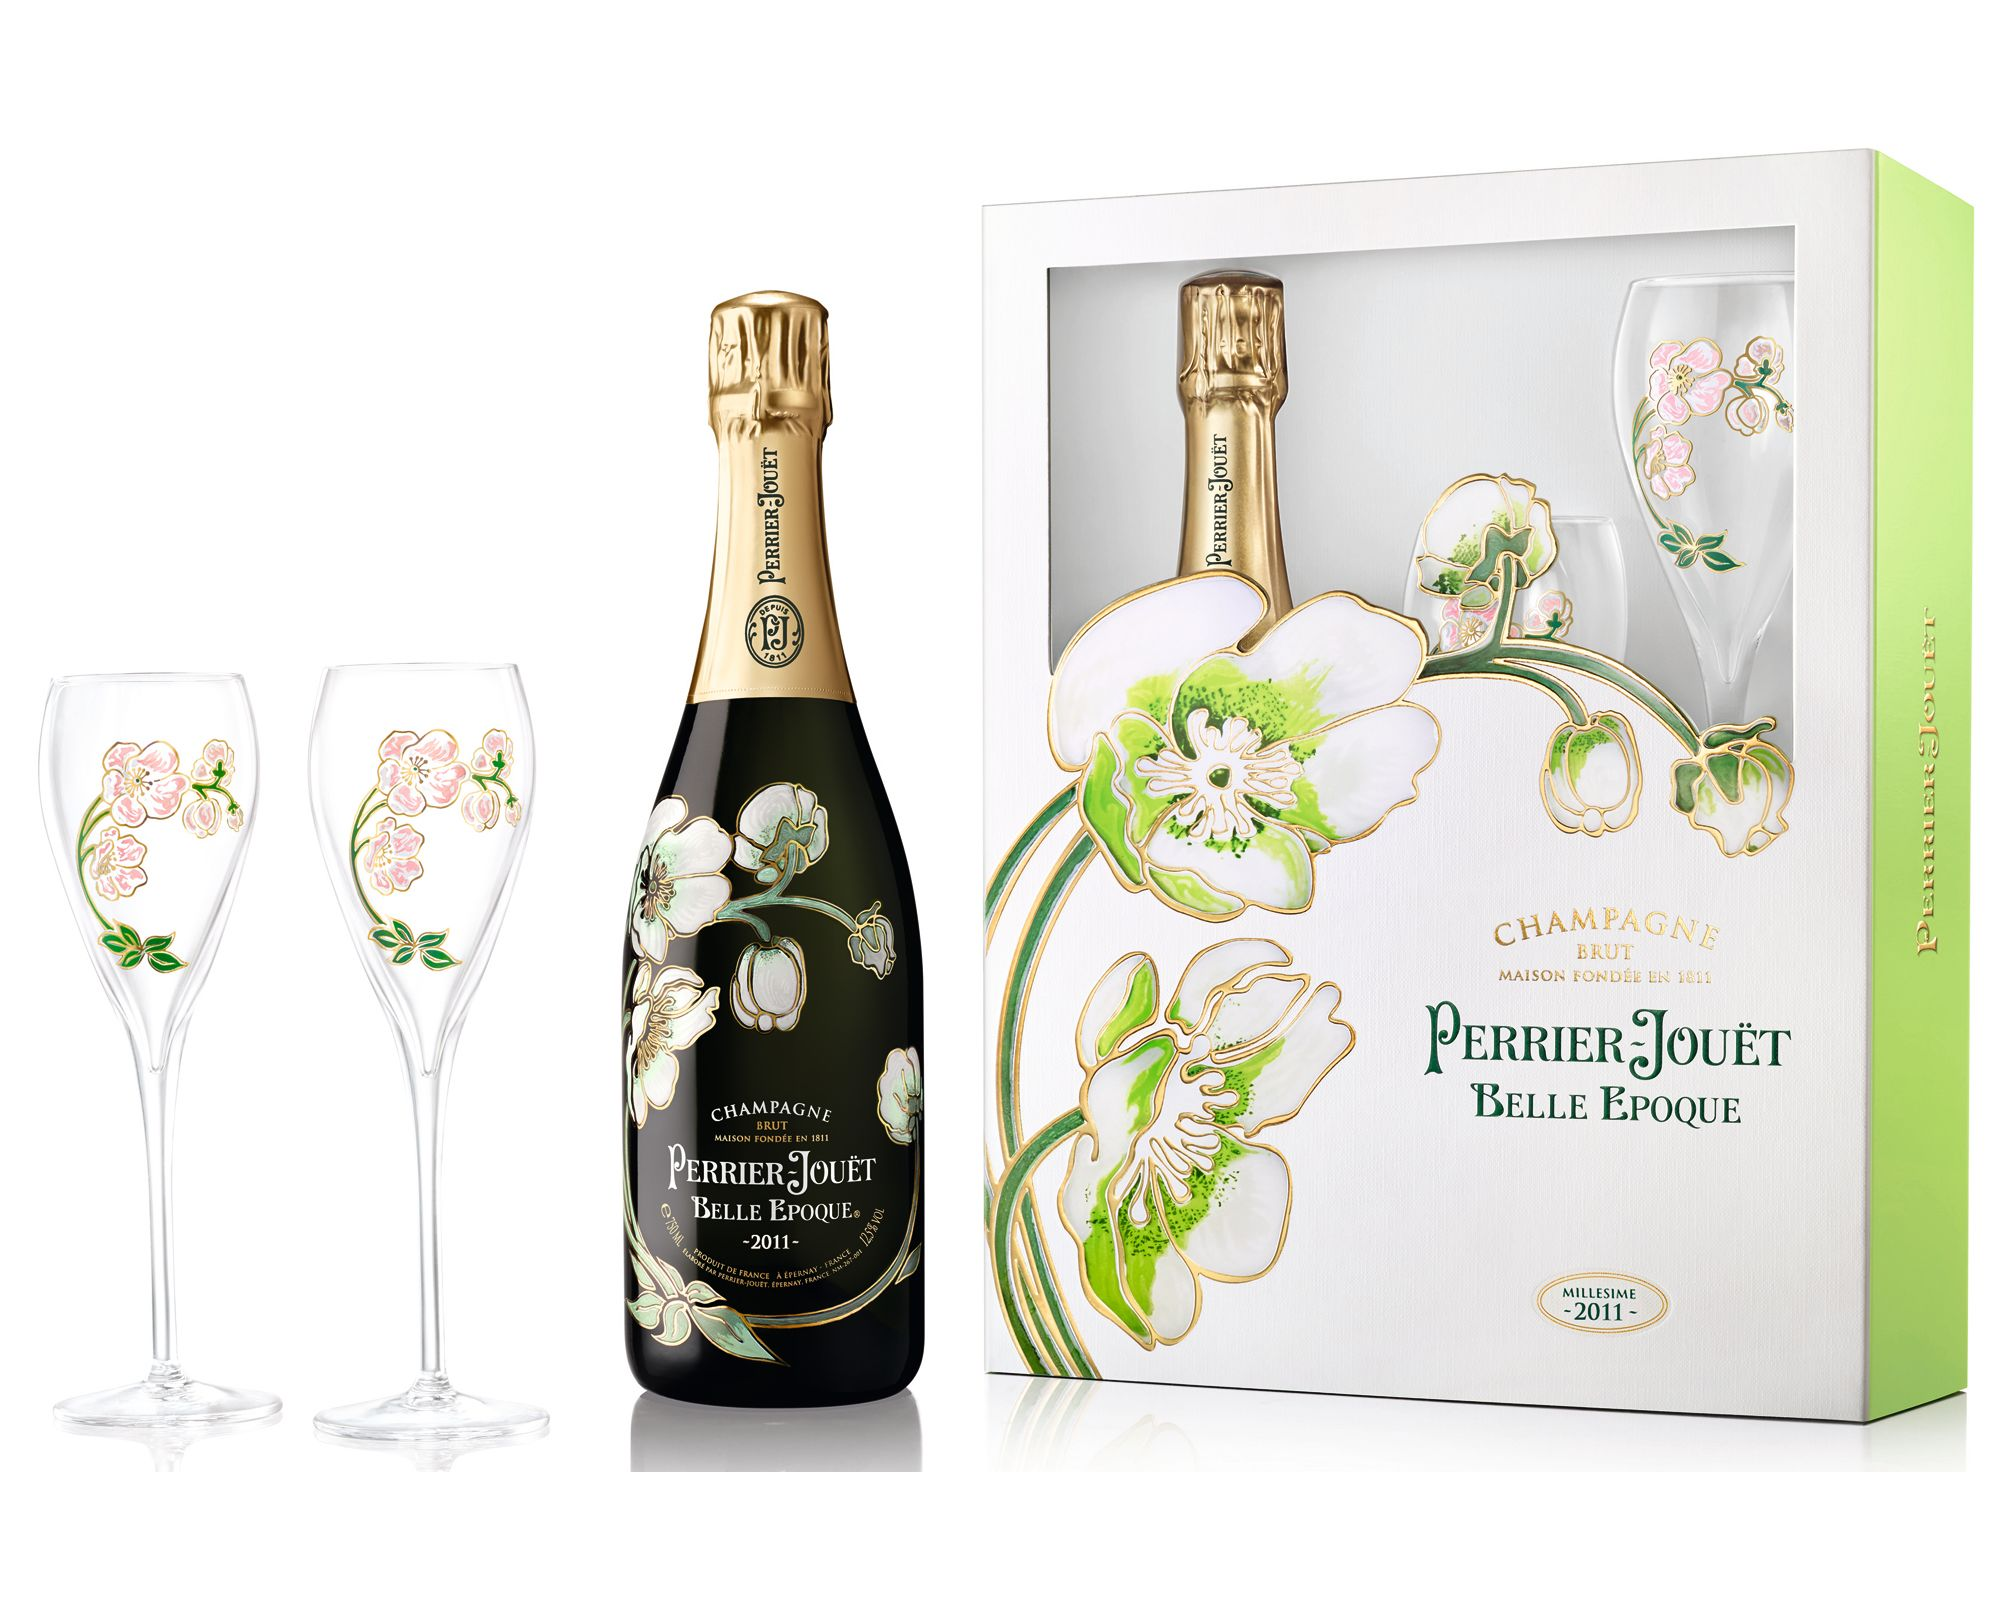 Perrier-Jouet Belle Epoque With Glassware Set 2011 Gift Product Image